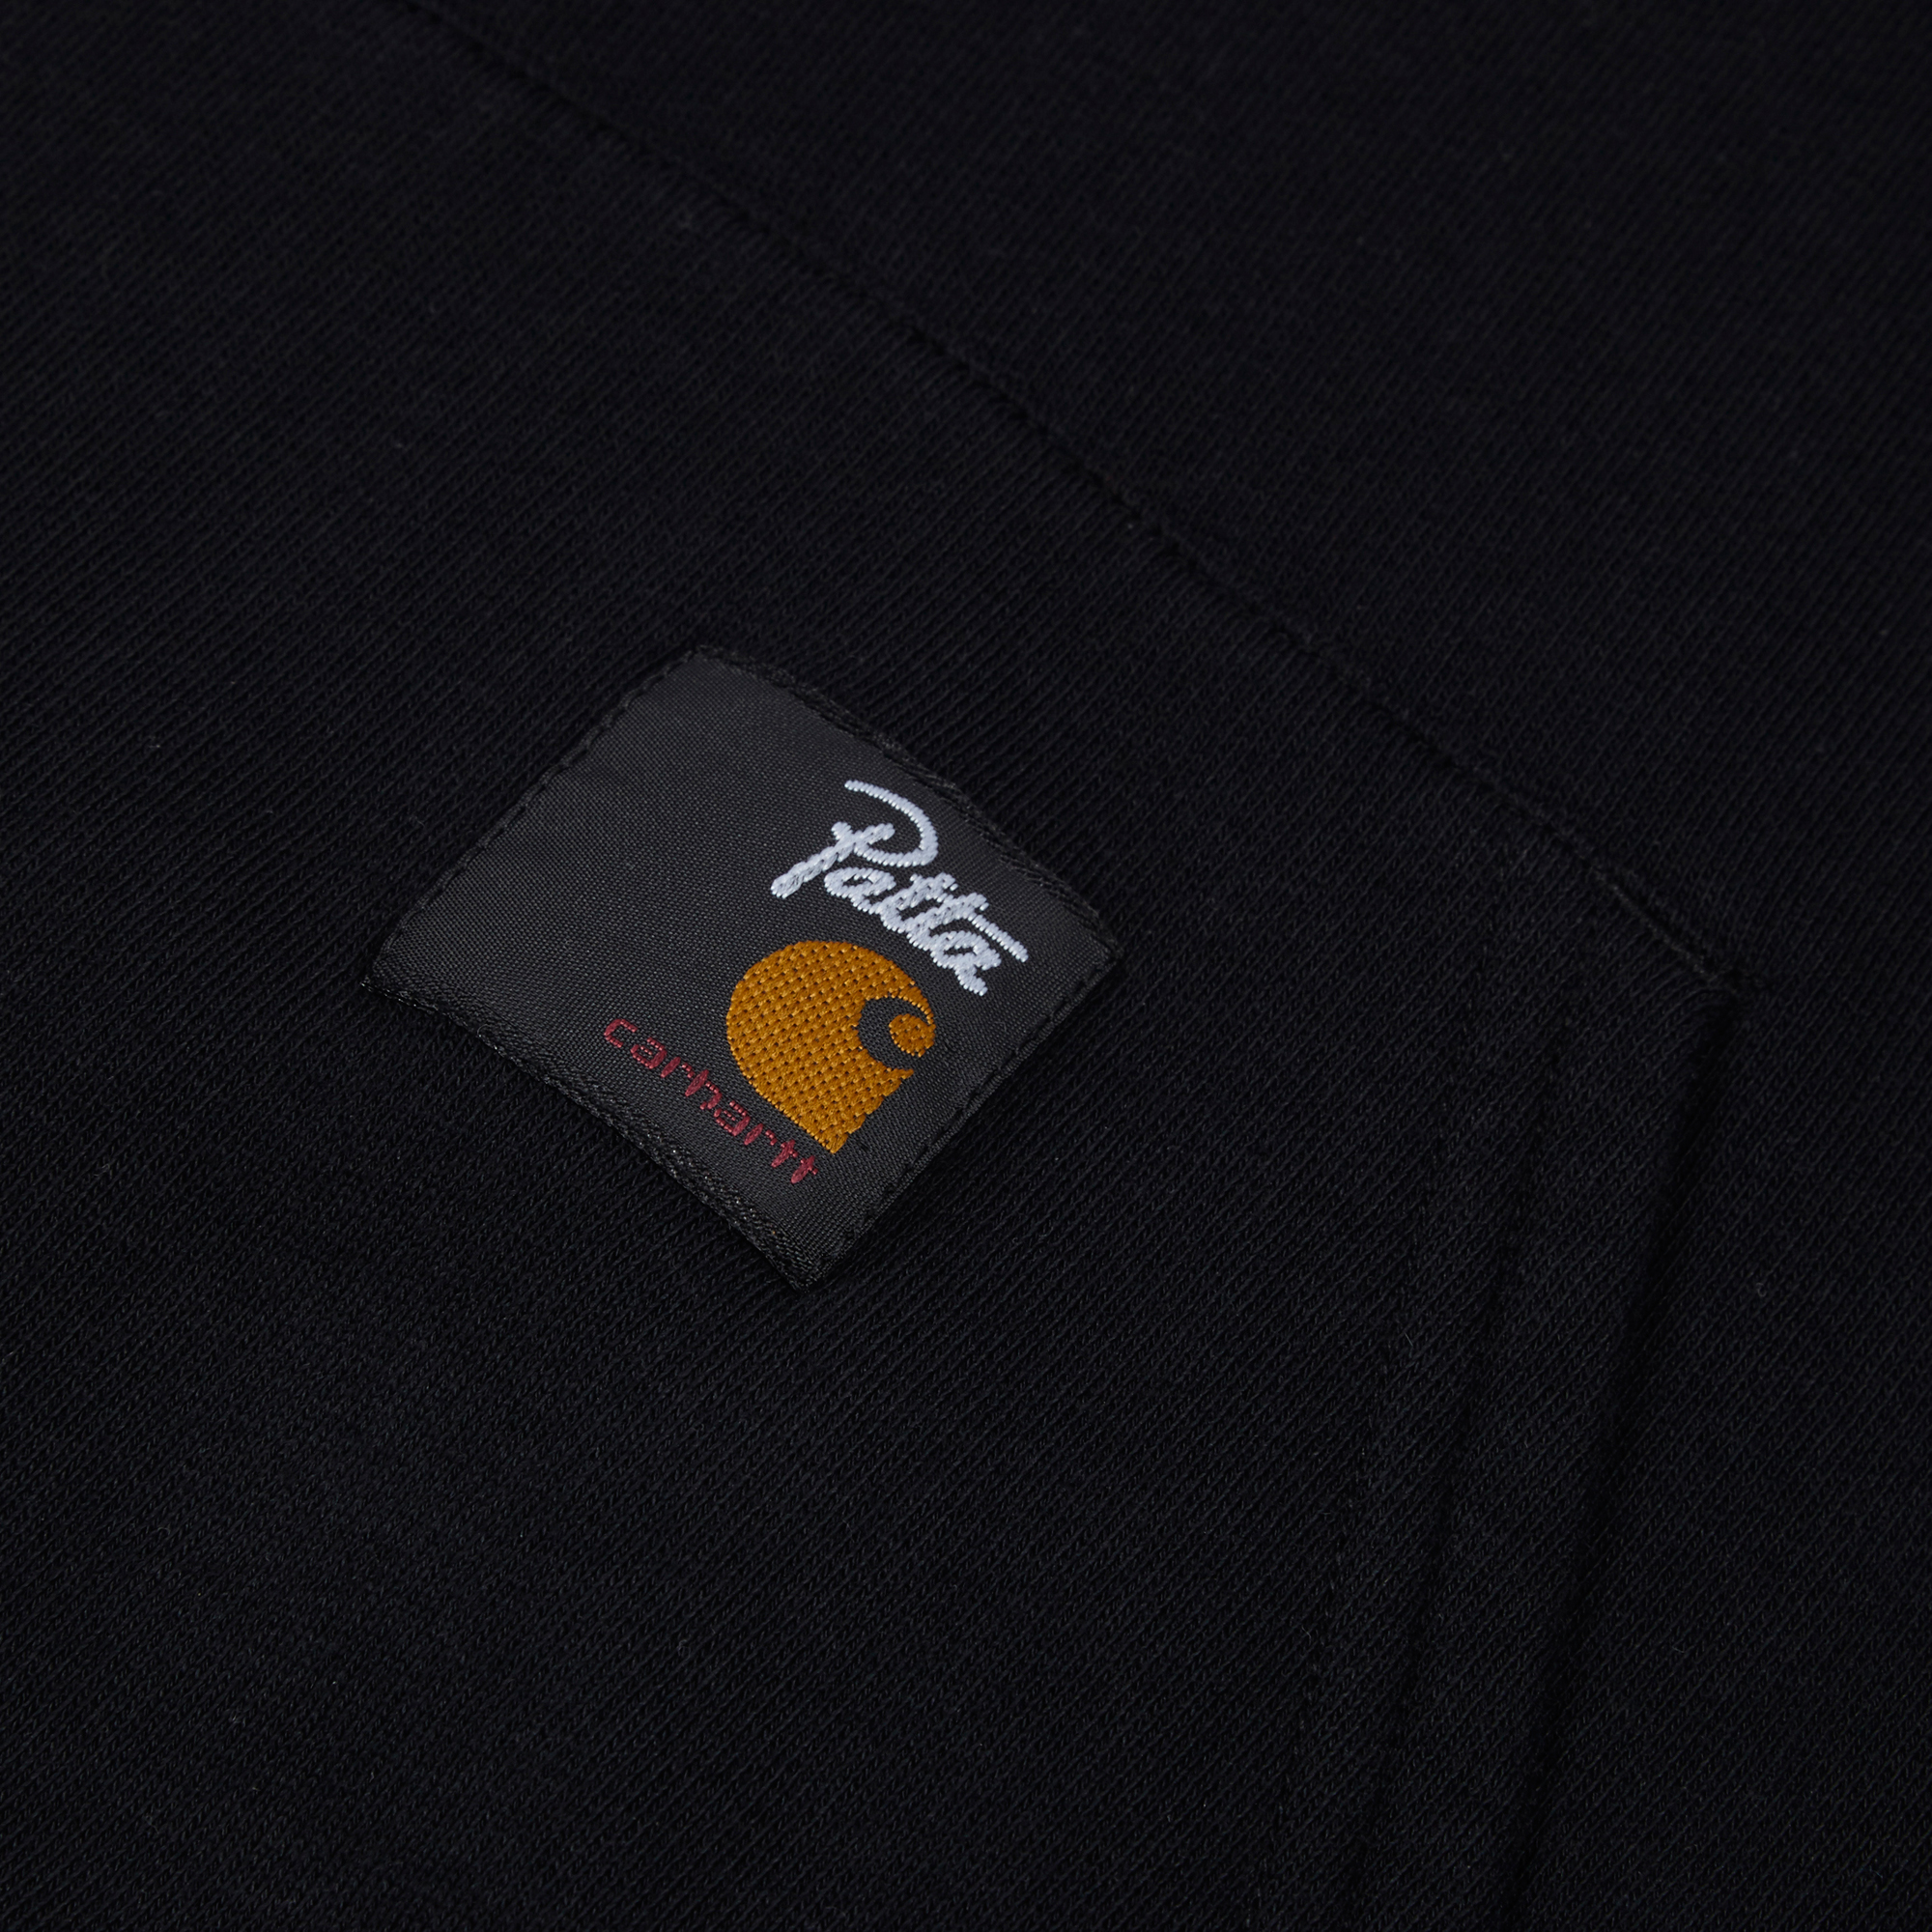 9d73b60a15 Carhartt WIP x Patta Hooded Sweat - Black/White